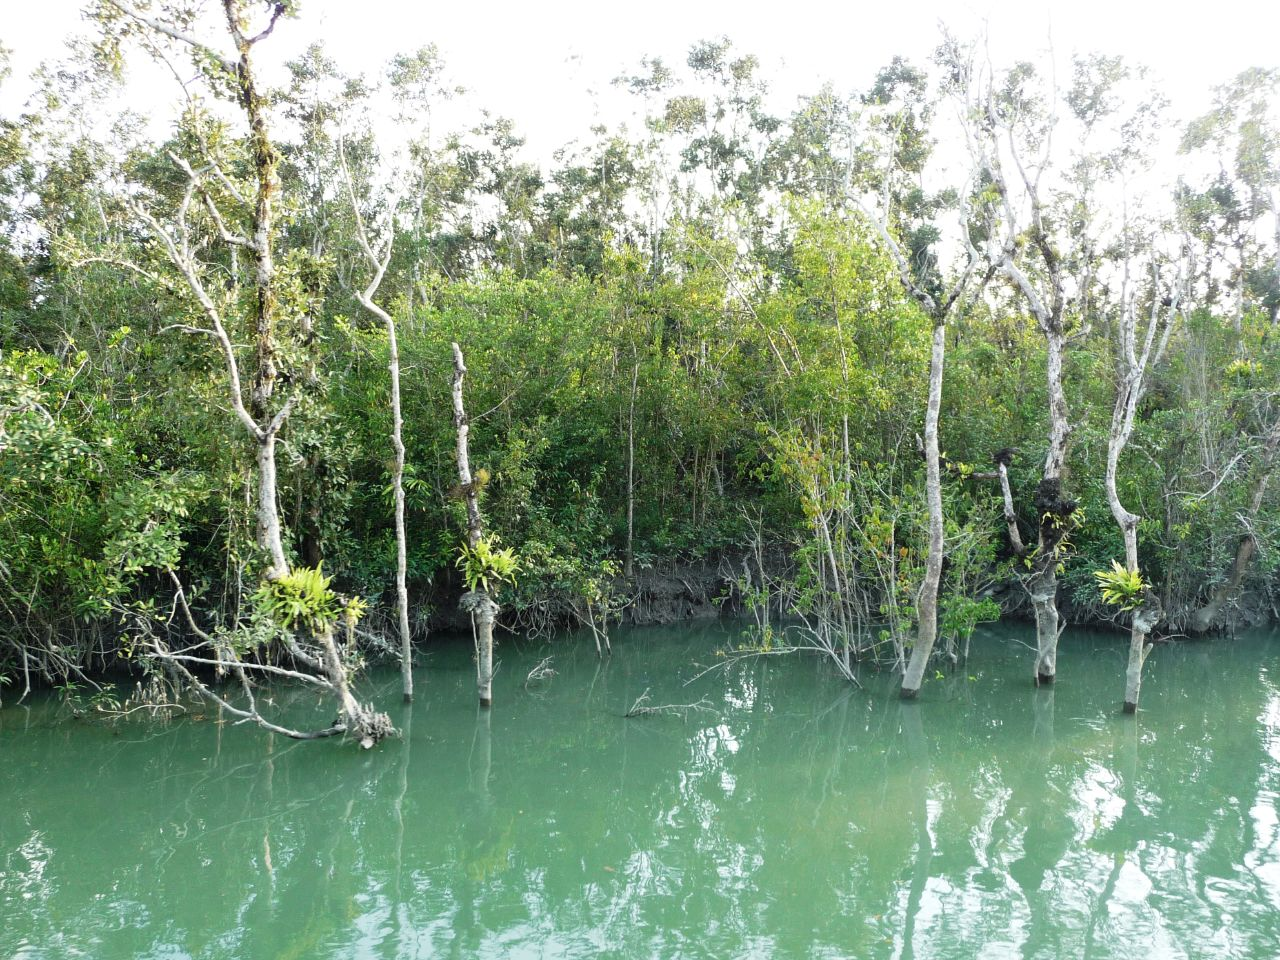 SundarbansNationalParkoriginal13489jpg   Thousand Wonders 1280x960